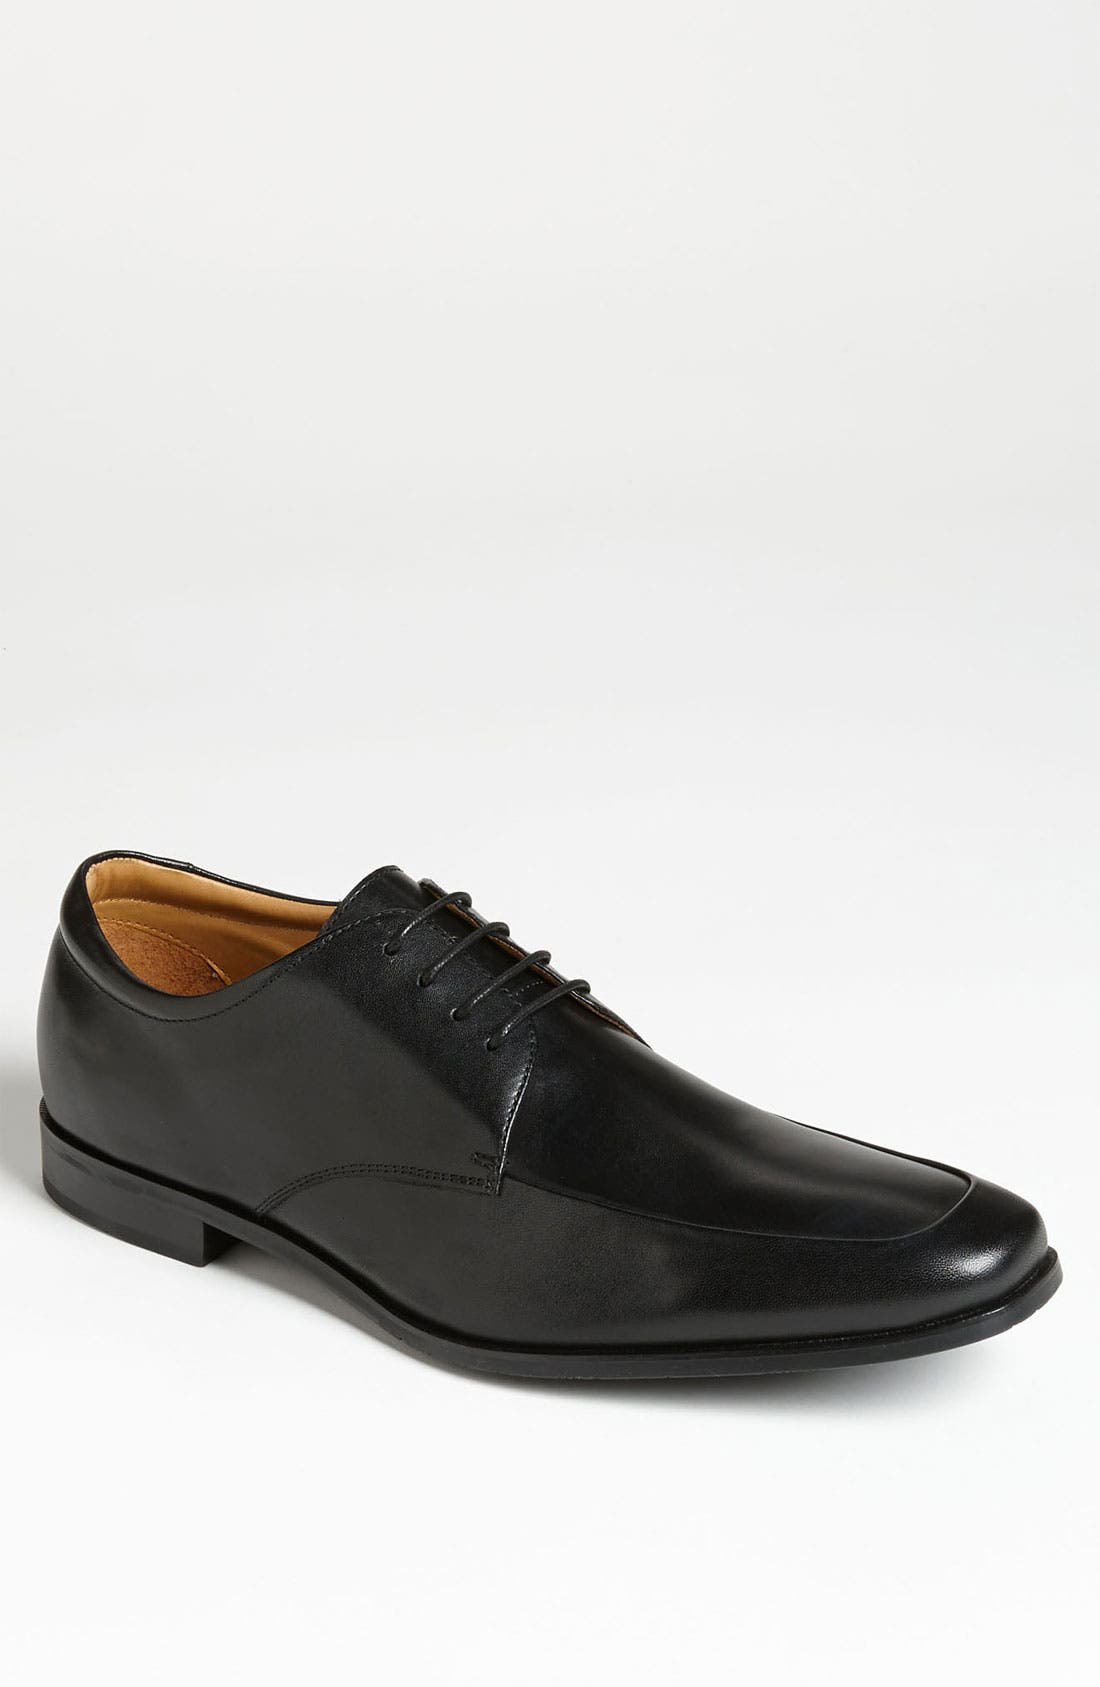 Main Image - Gordon Rush 'Parsons' Apron Toe Derby